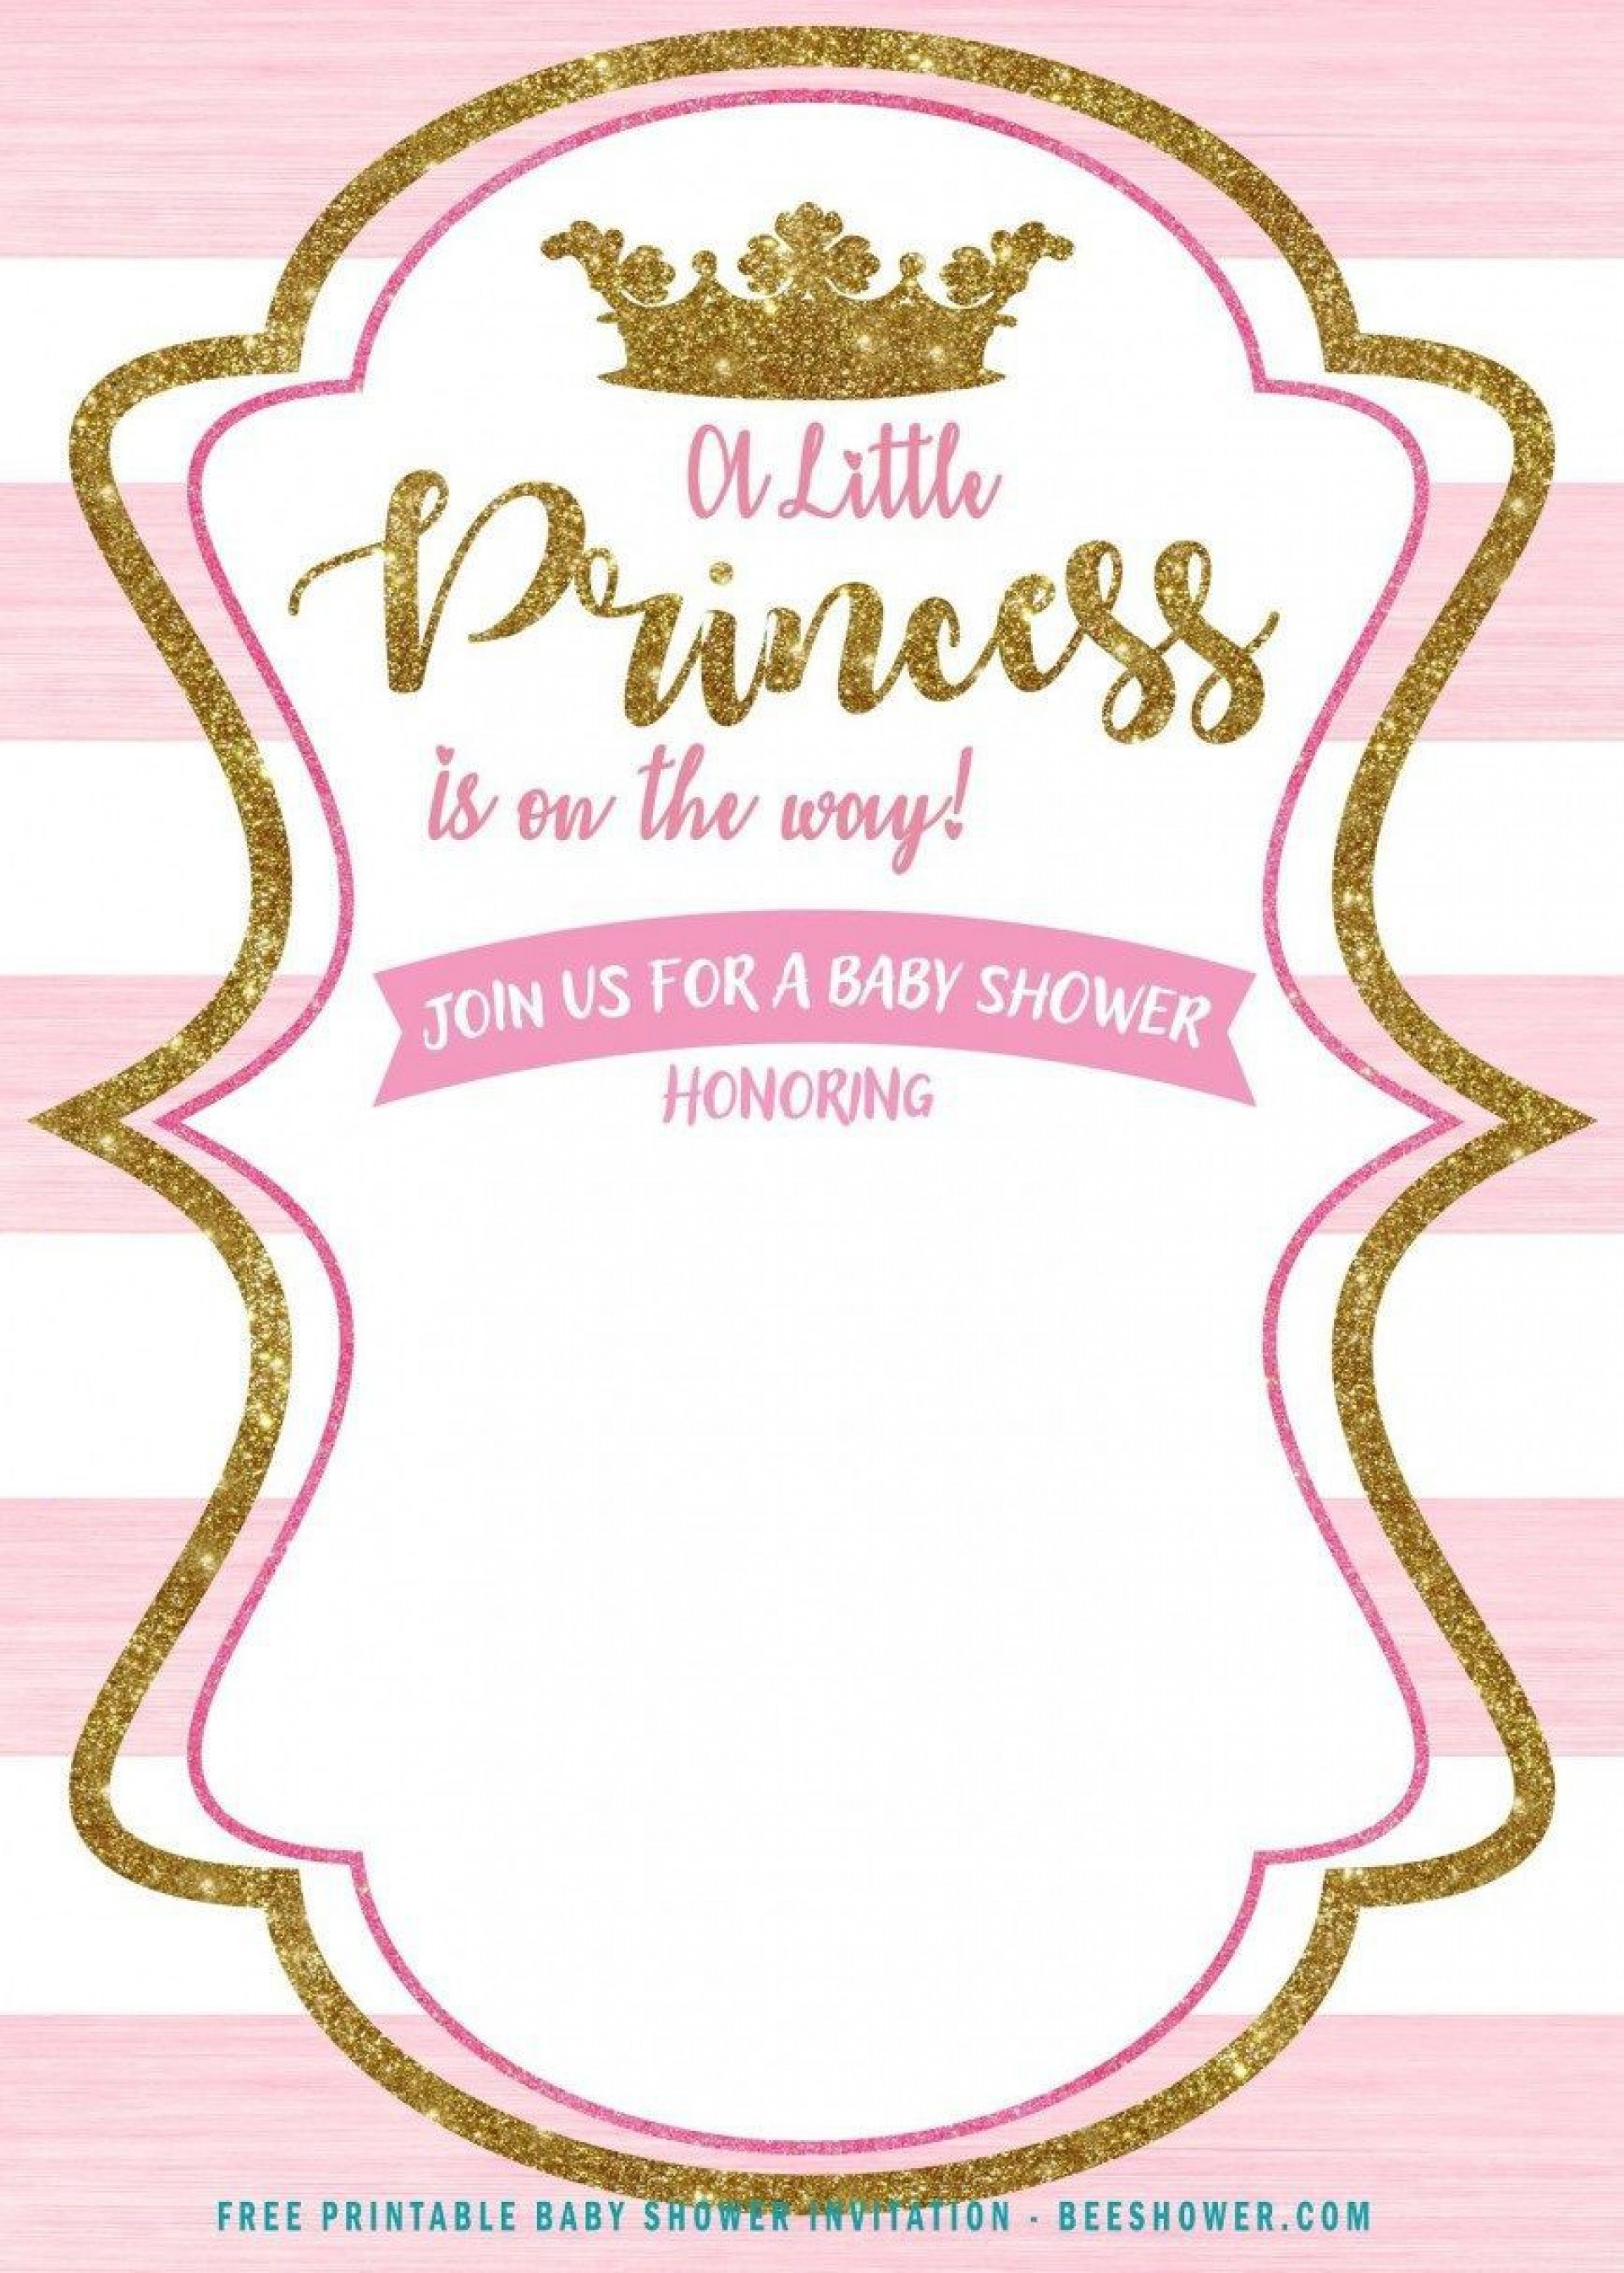 002 Surprising Free Princes Baby Shower Invitation Template For Word Highest Clarity 1920